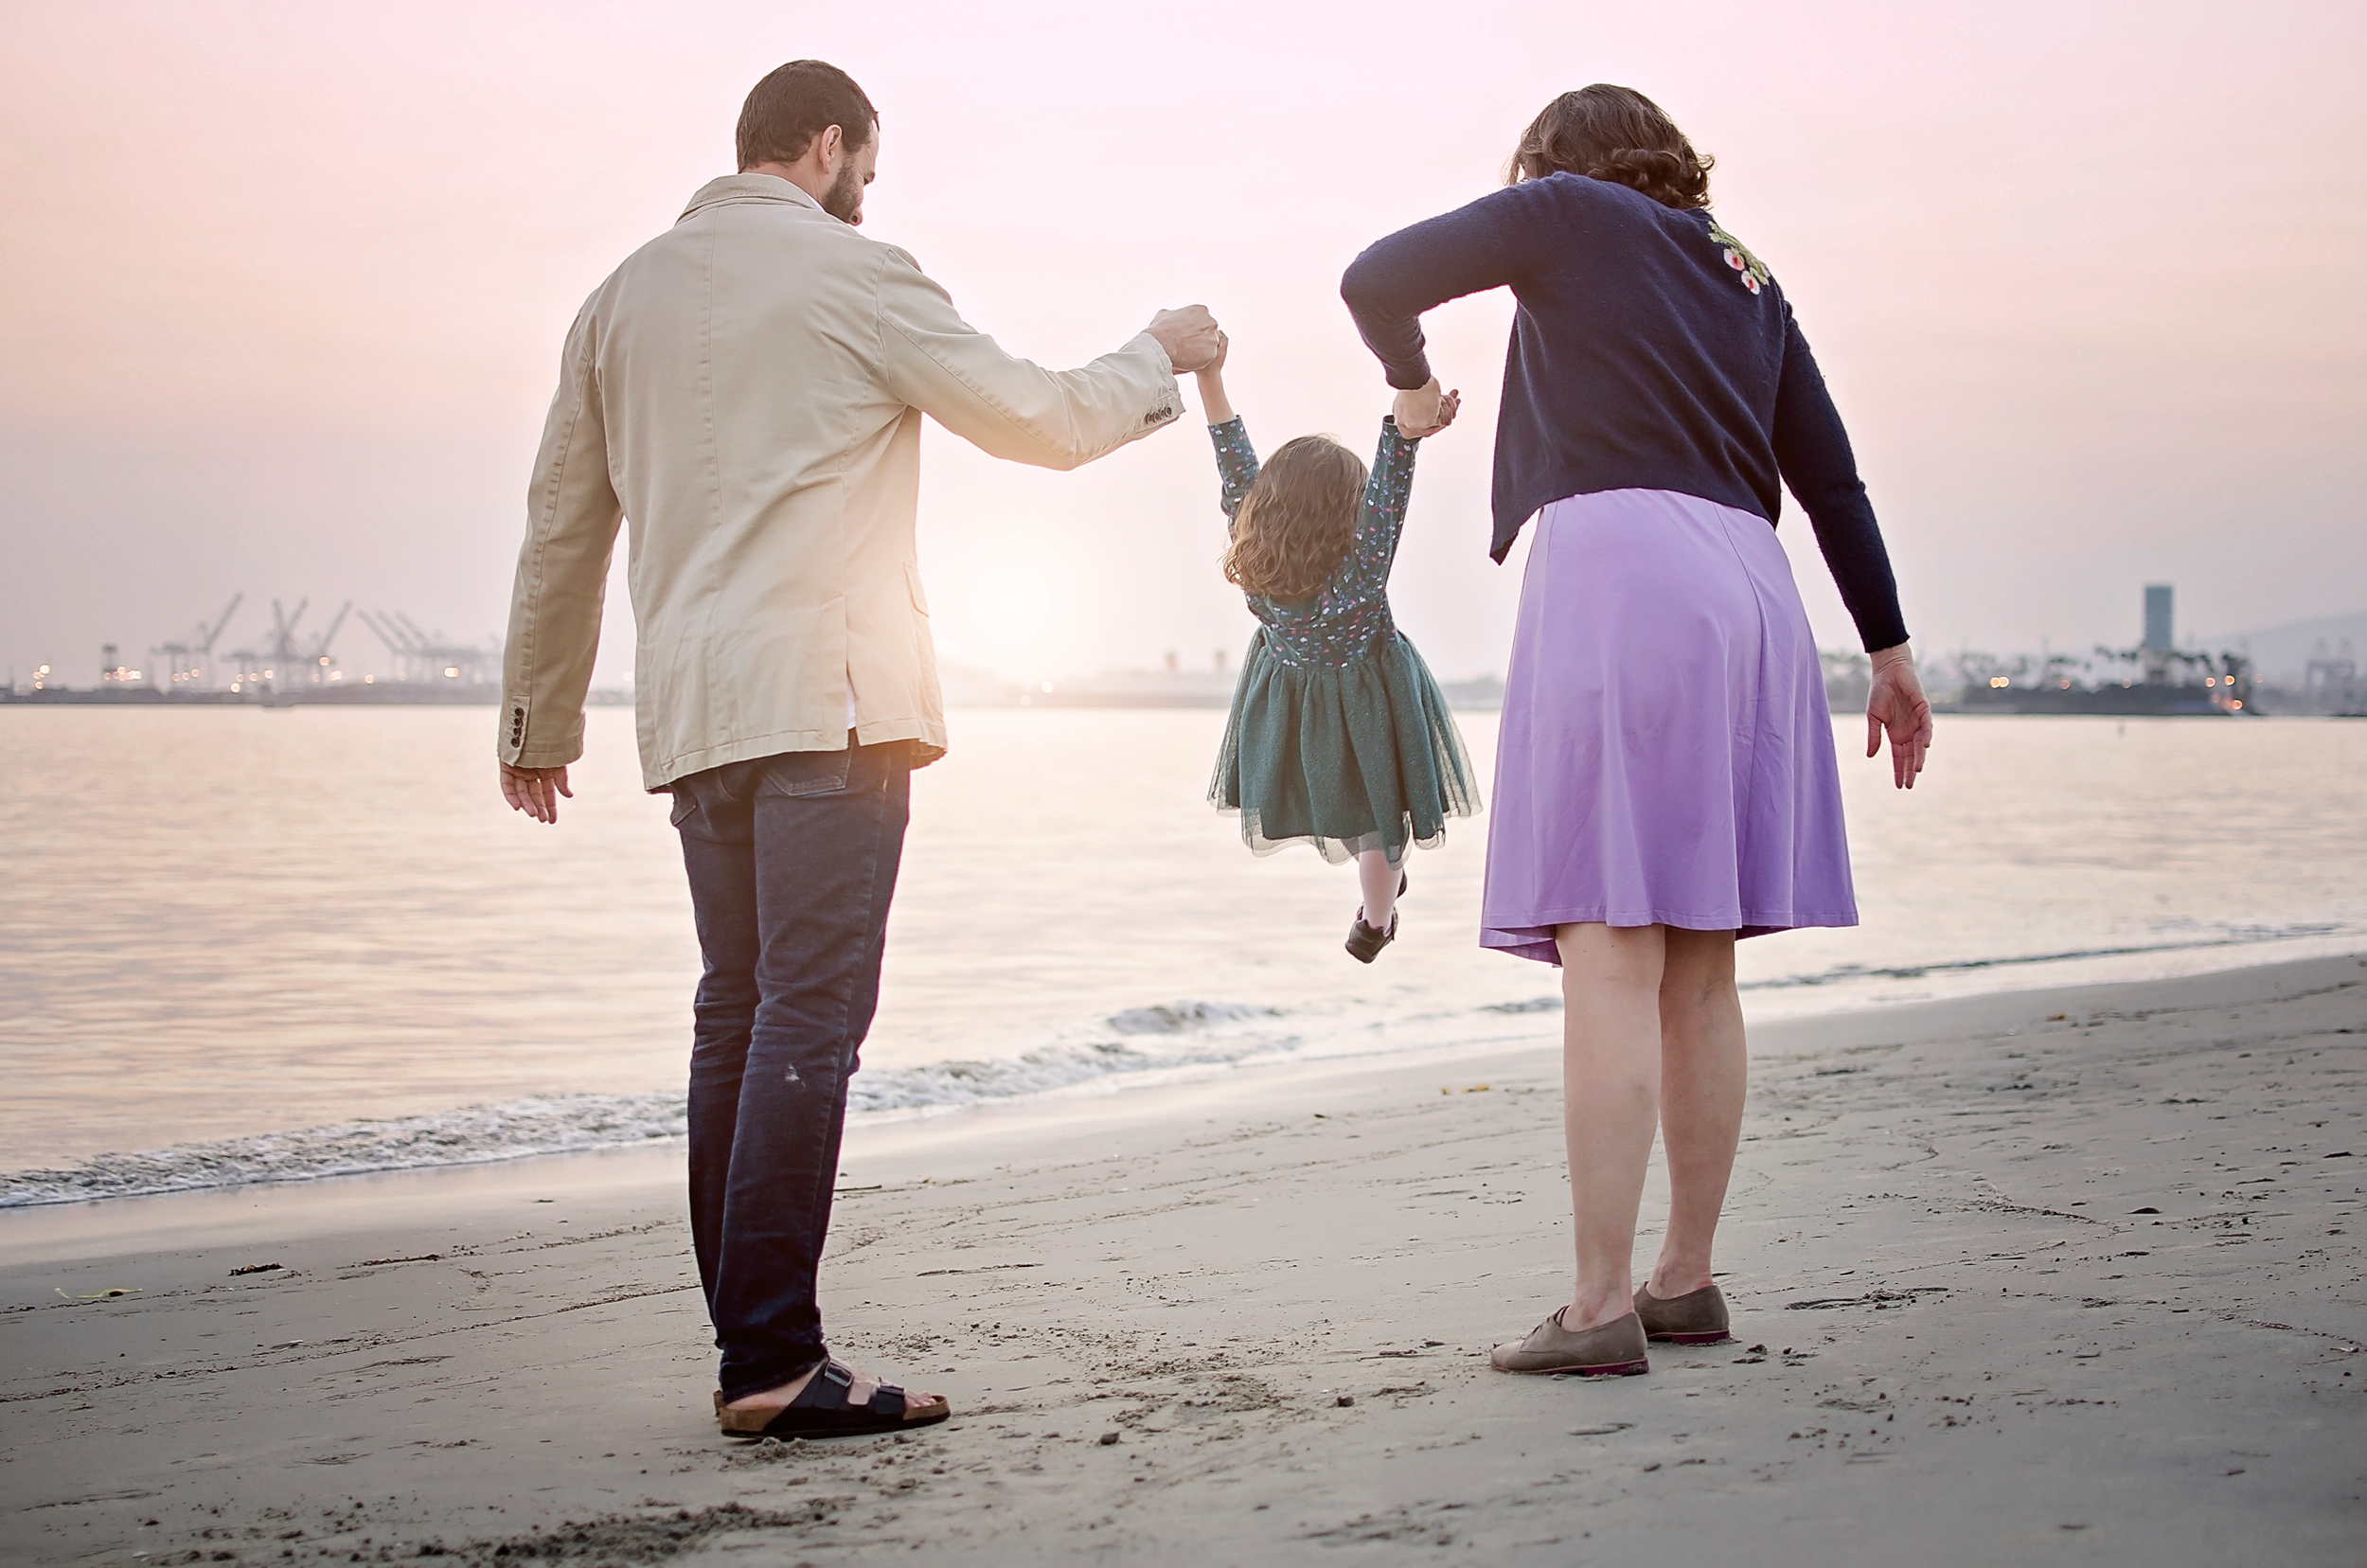 southern-cali-beach-family-fun-swinging-play-photography.png